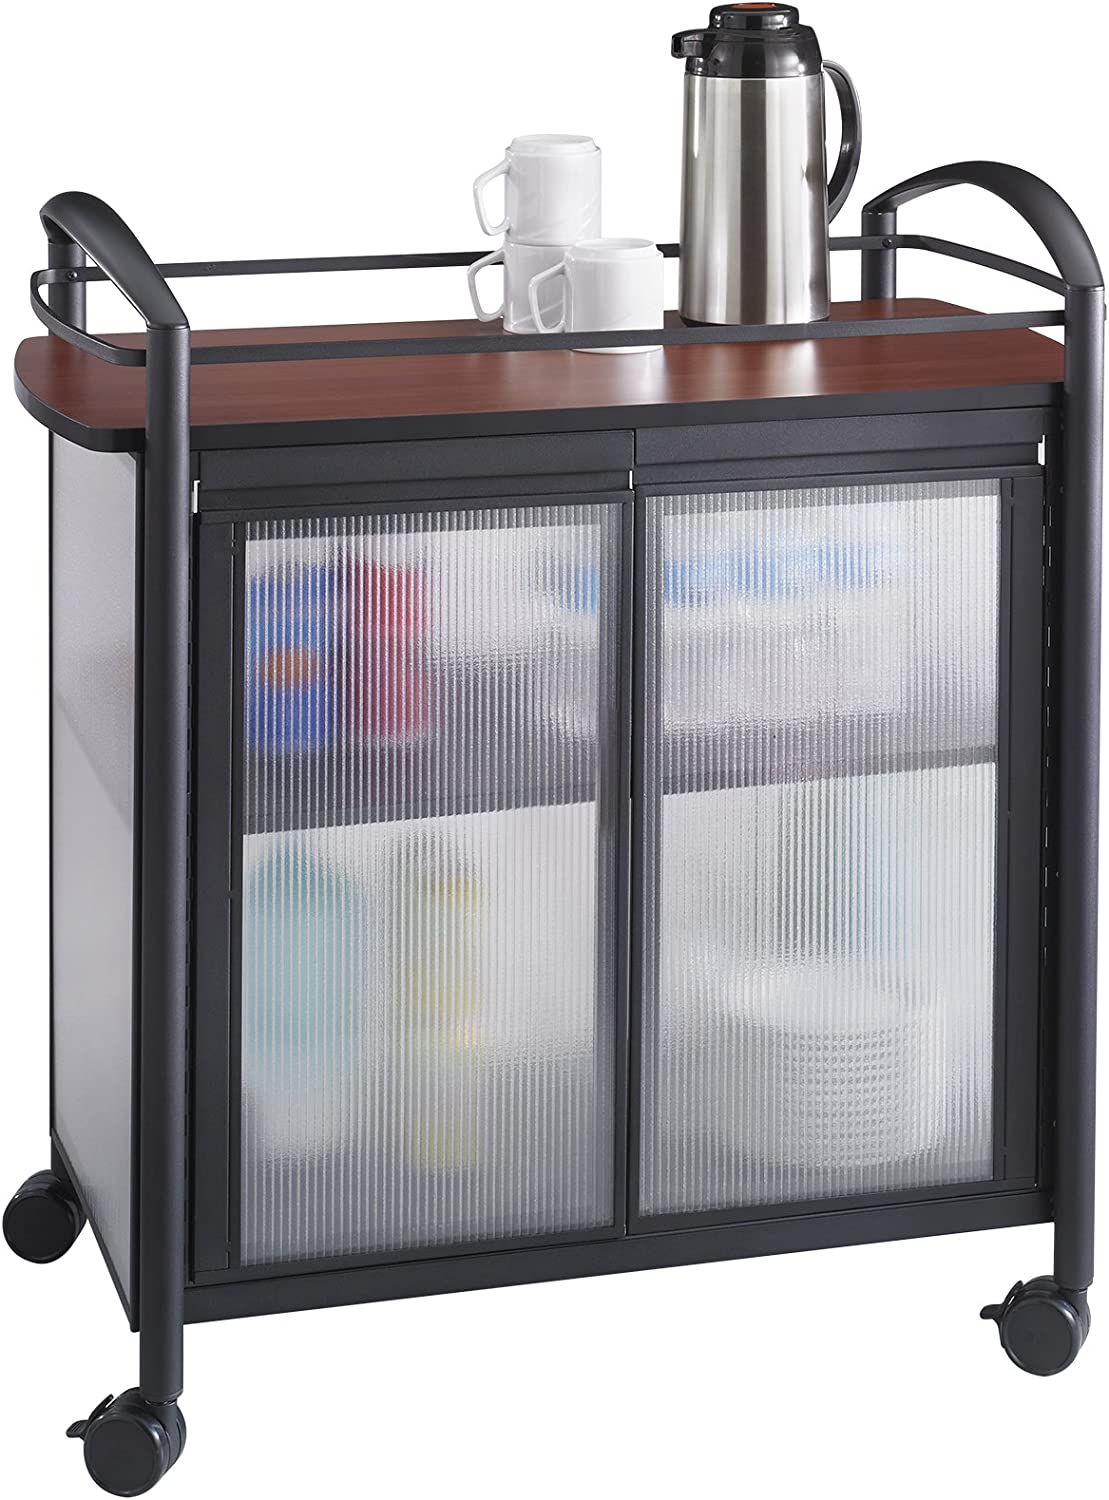 Safco Products Impromptu Refreshment Cart 8966BL, Cherry Top Black Frame, 200 lbs. Capacity, Double Doors, Swivel Wheels